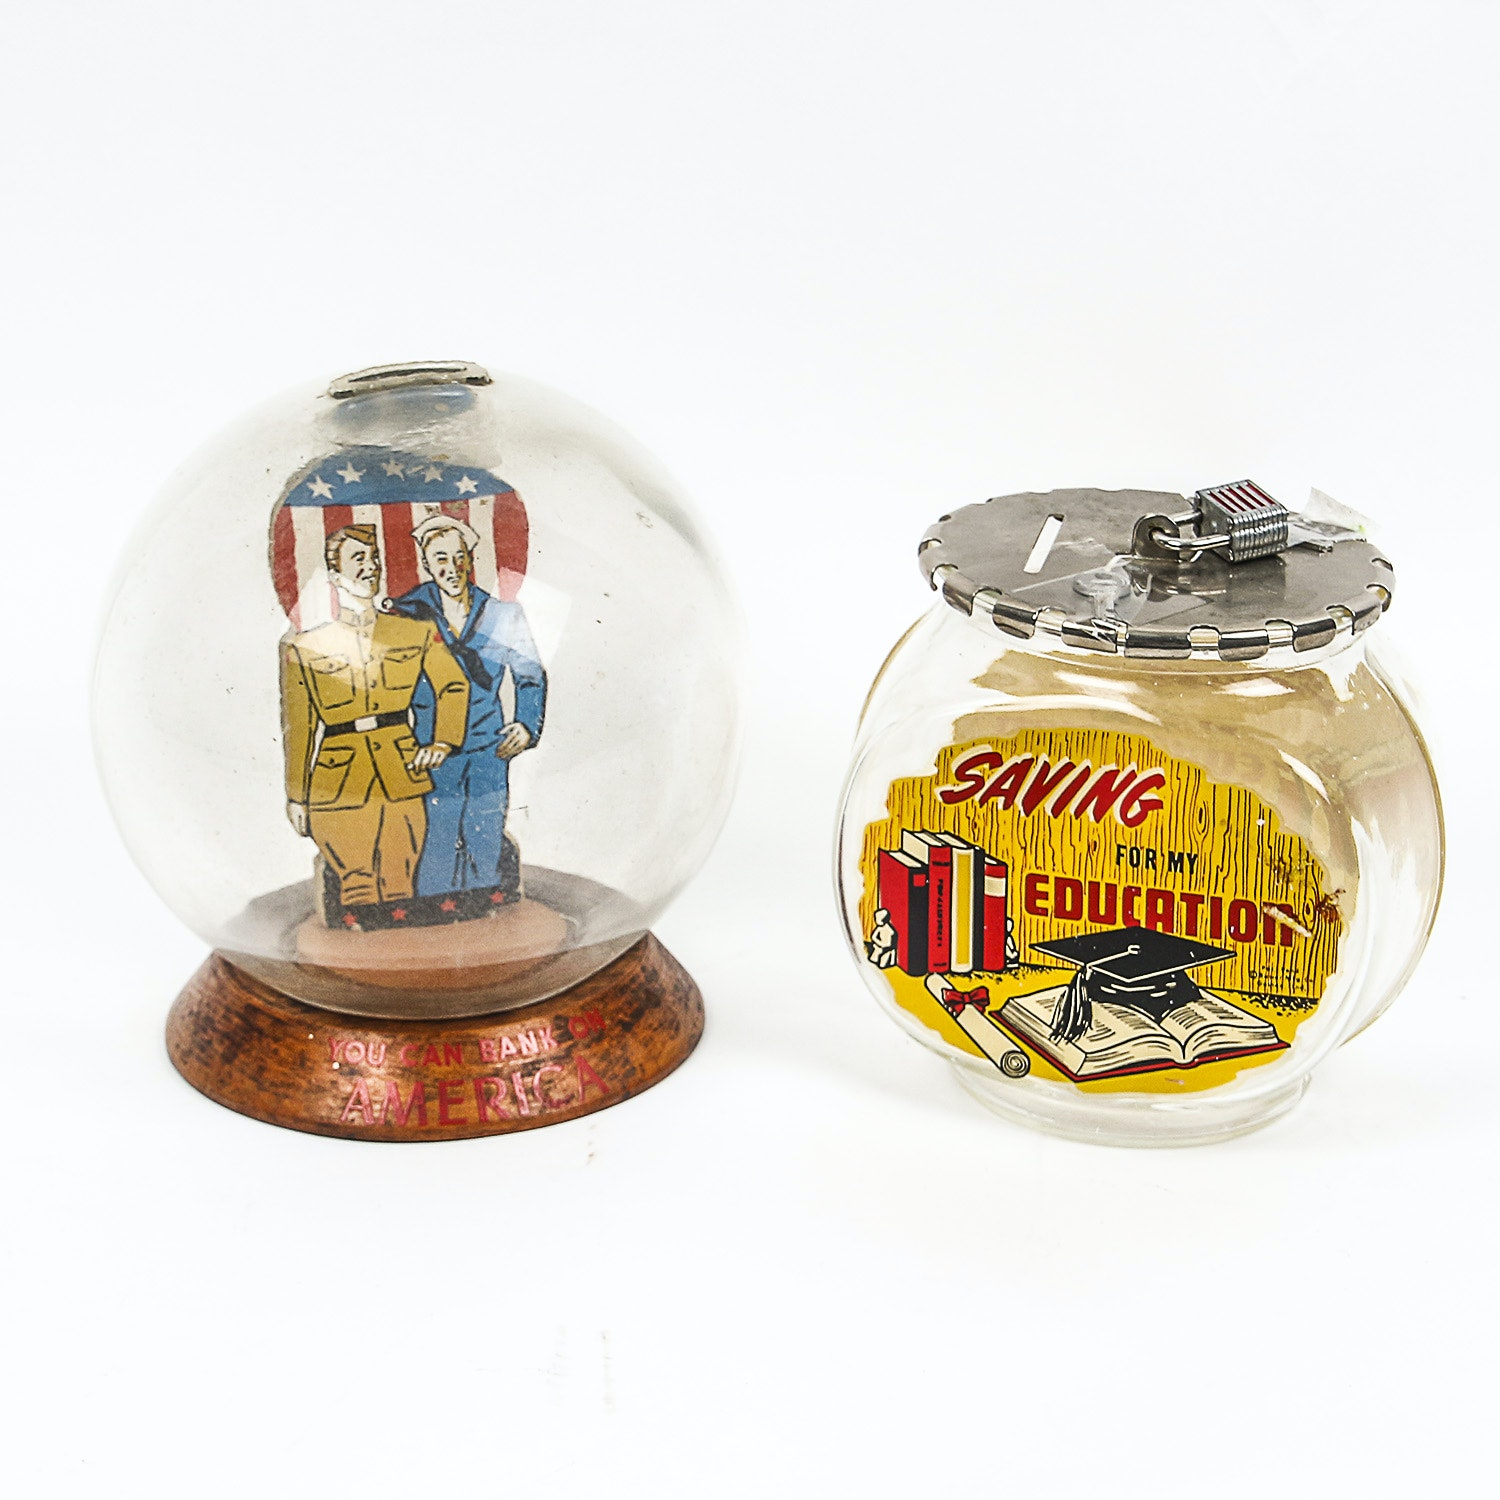 Vintage Military and Education Glass Bubble Banks